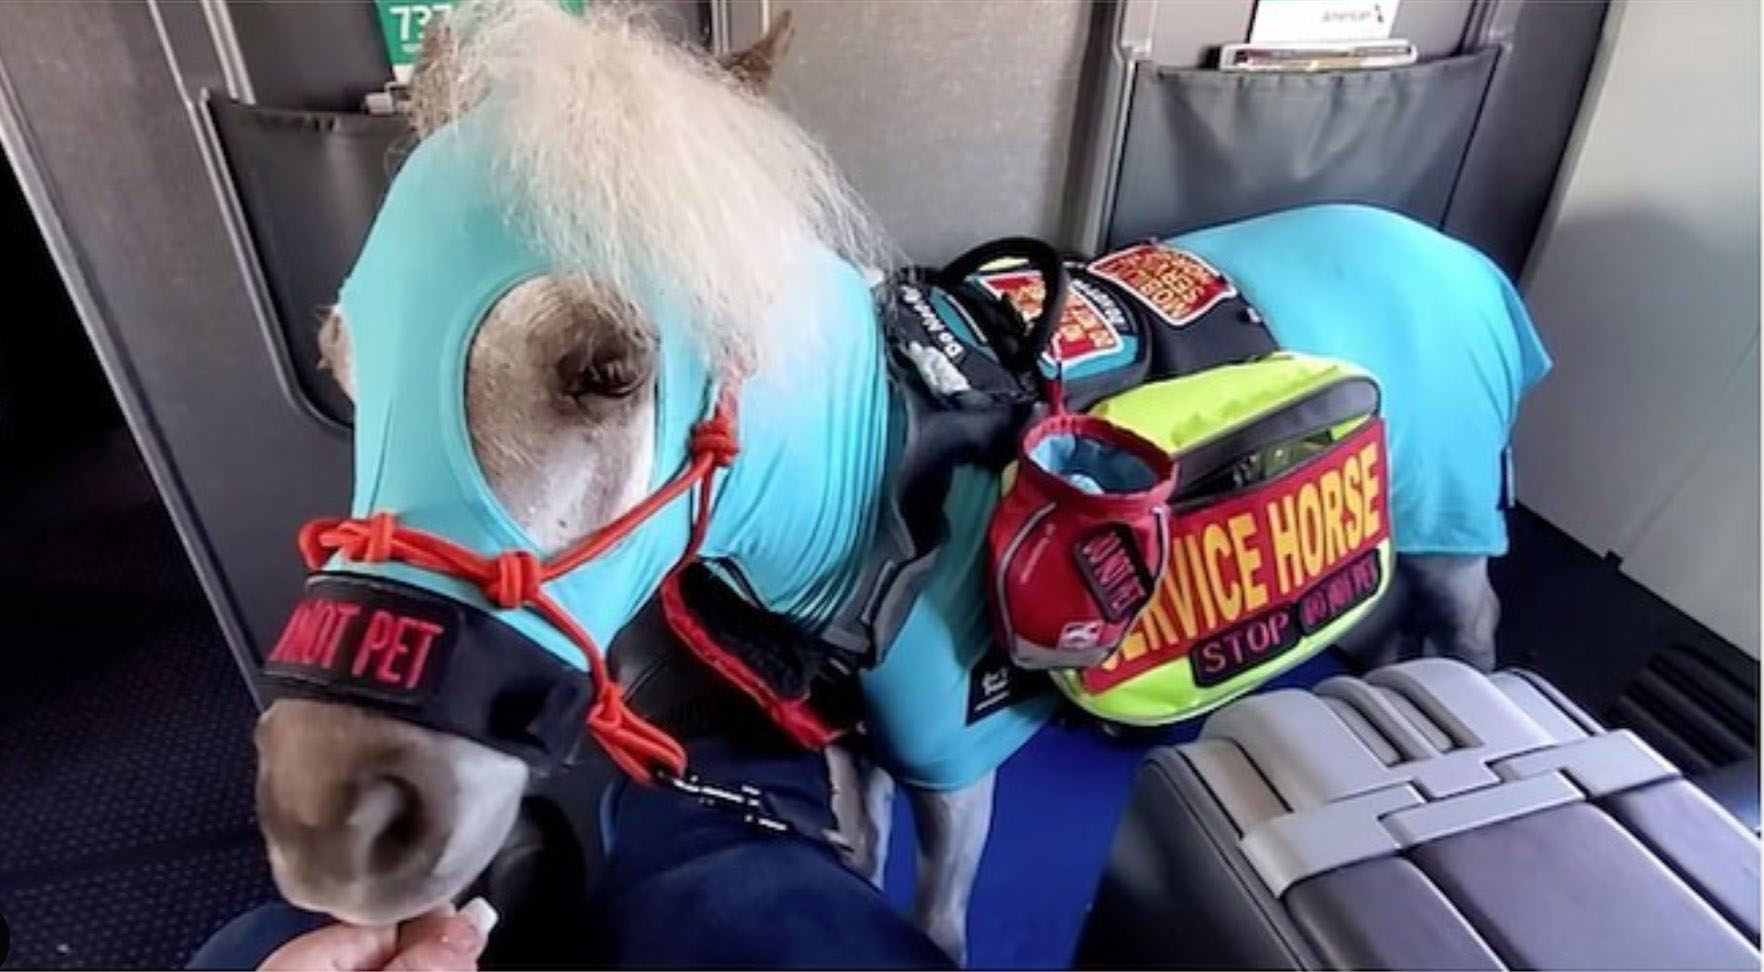 038-preview-airplane-emotional-support-horse